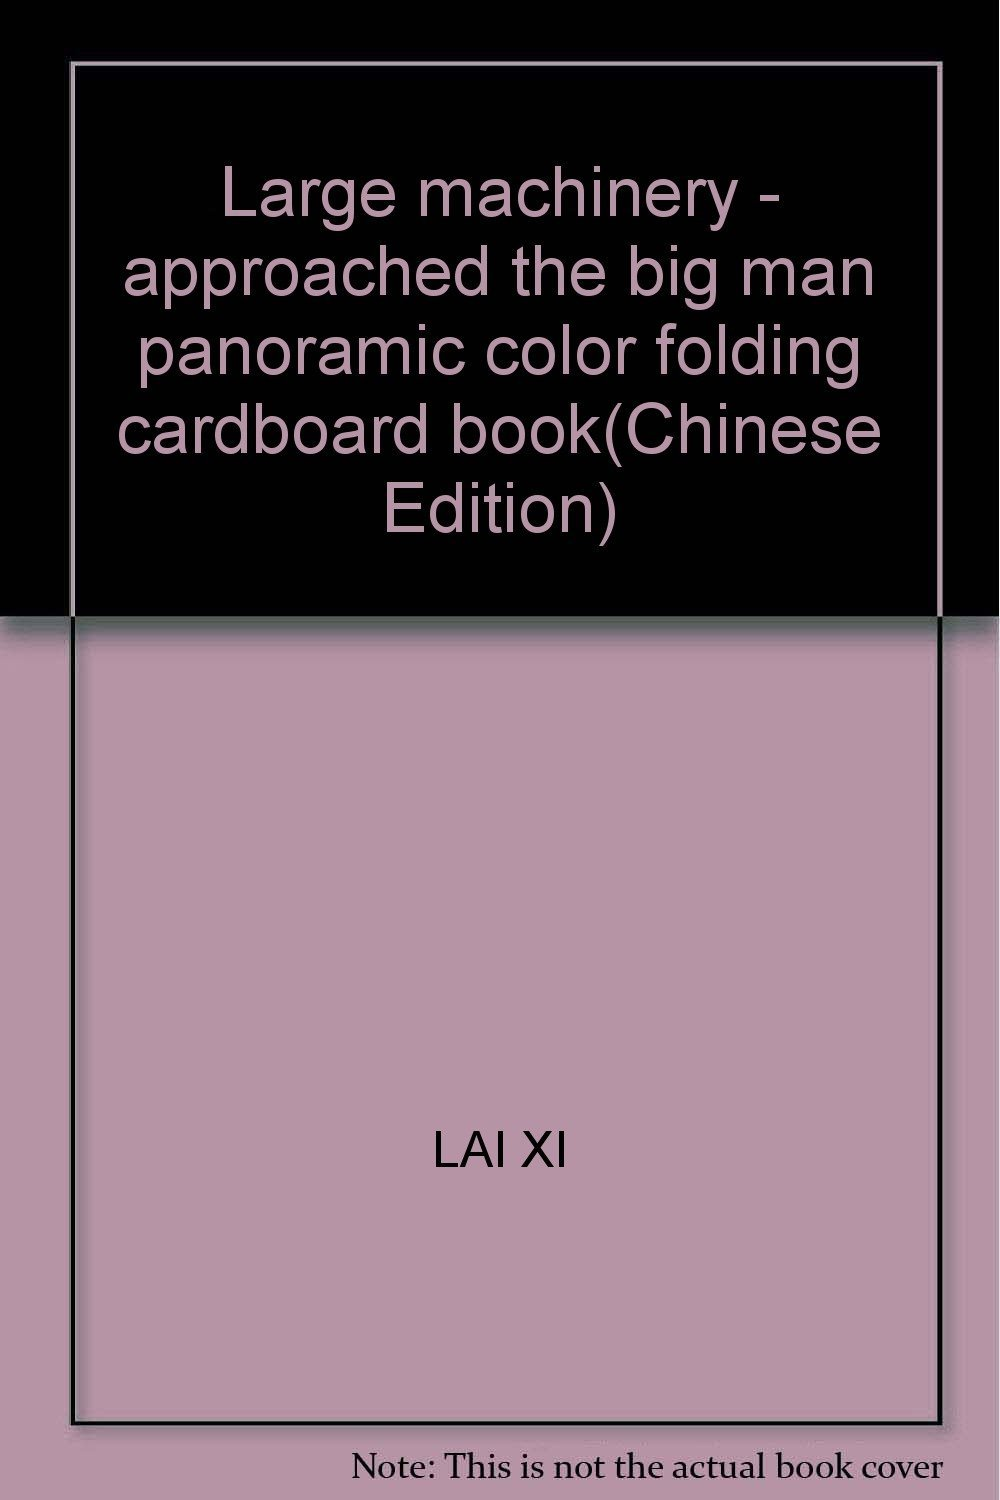 Download Large trucks - approached the big man panoramic color folding cardboard book(Chinese Edition) PDF